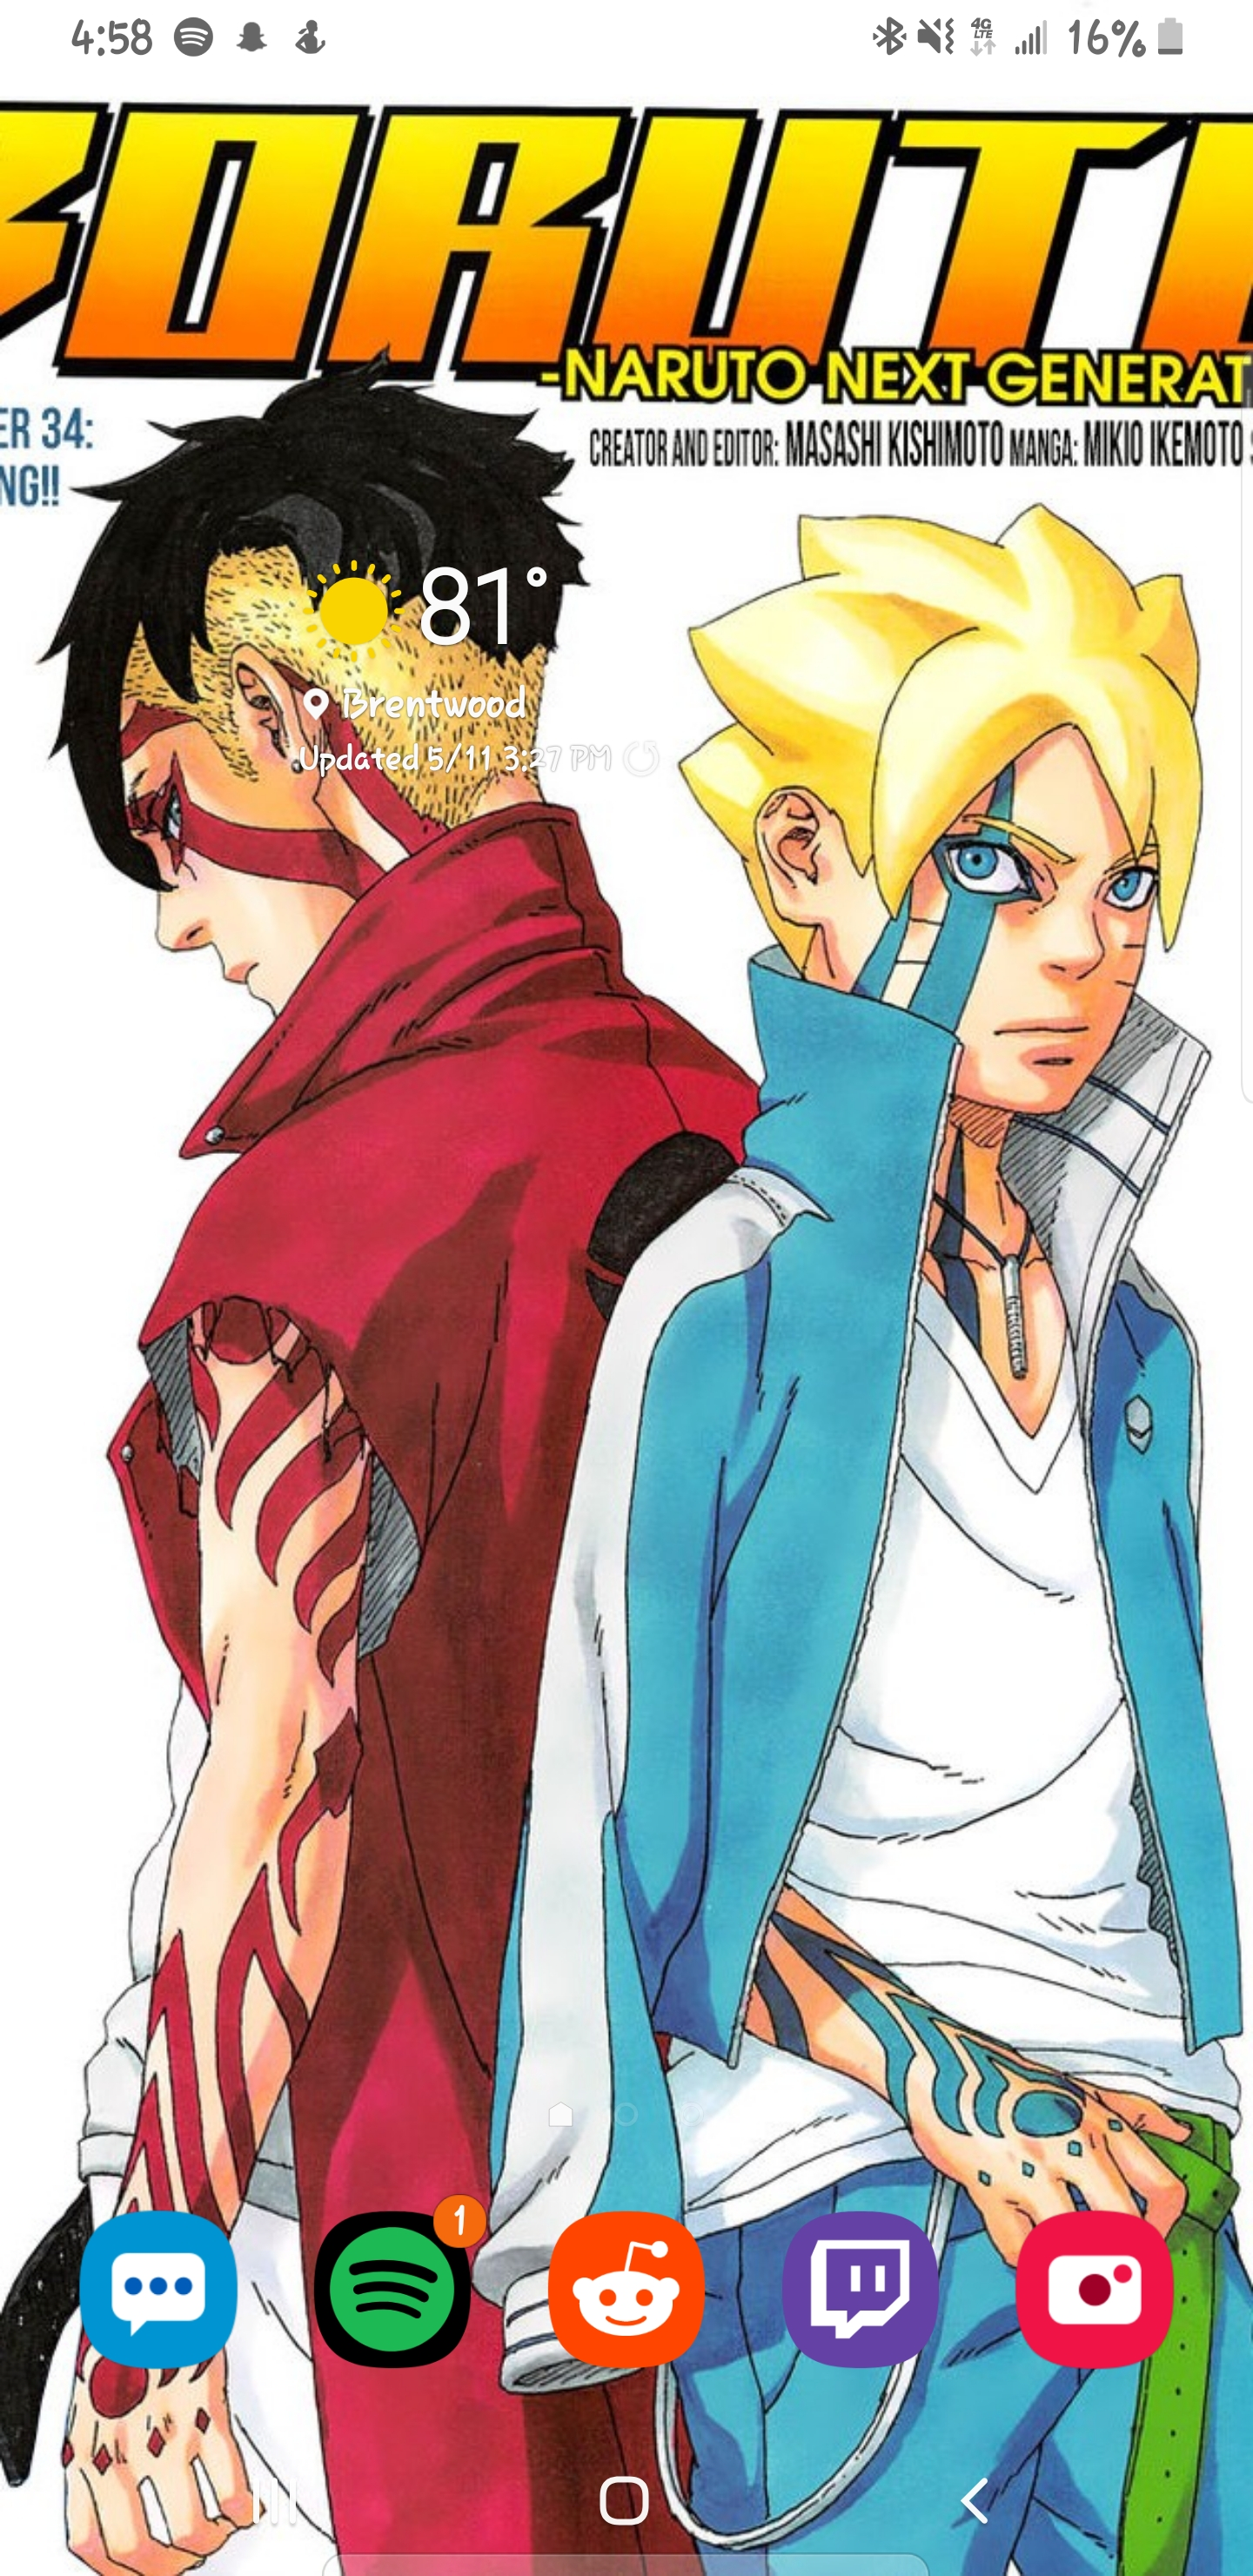 240 2403497 boruto vol 5 naruto next generations